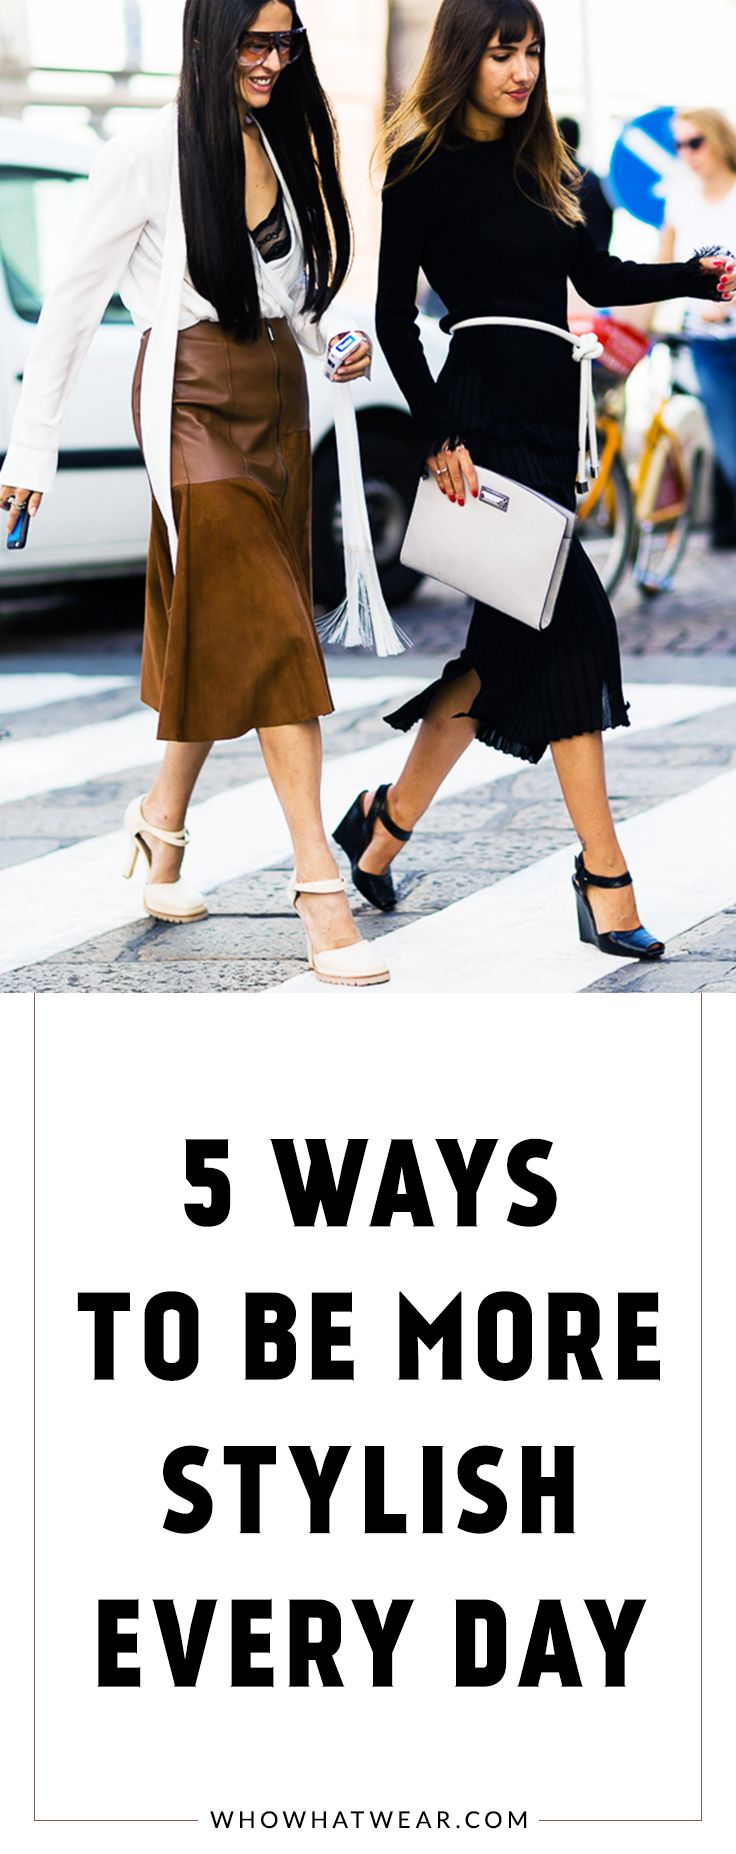 Simple style habits to practice every day